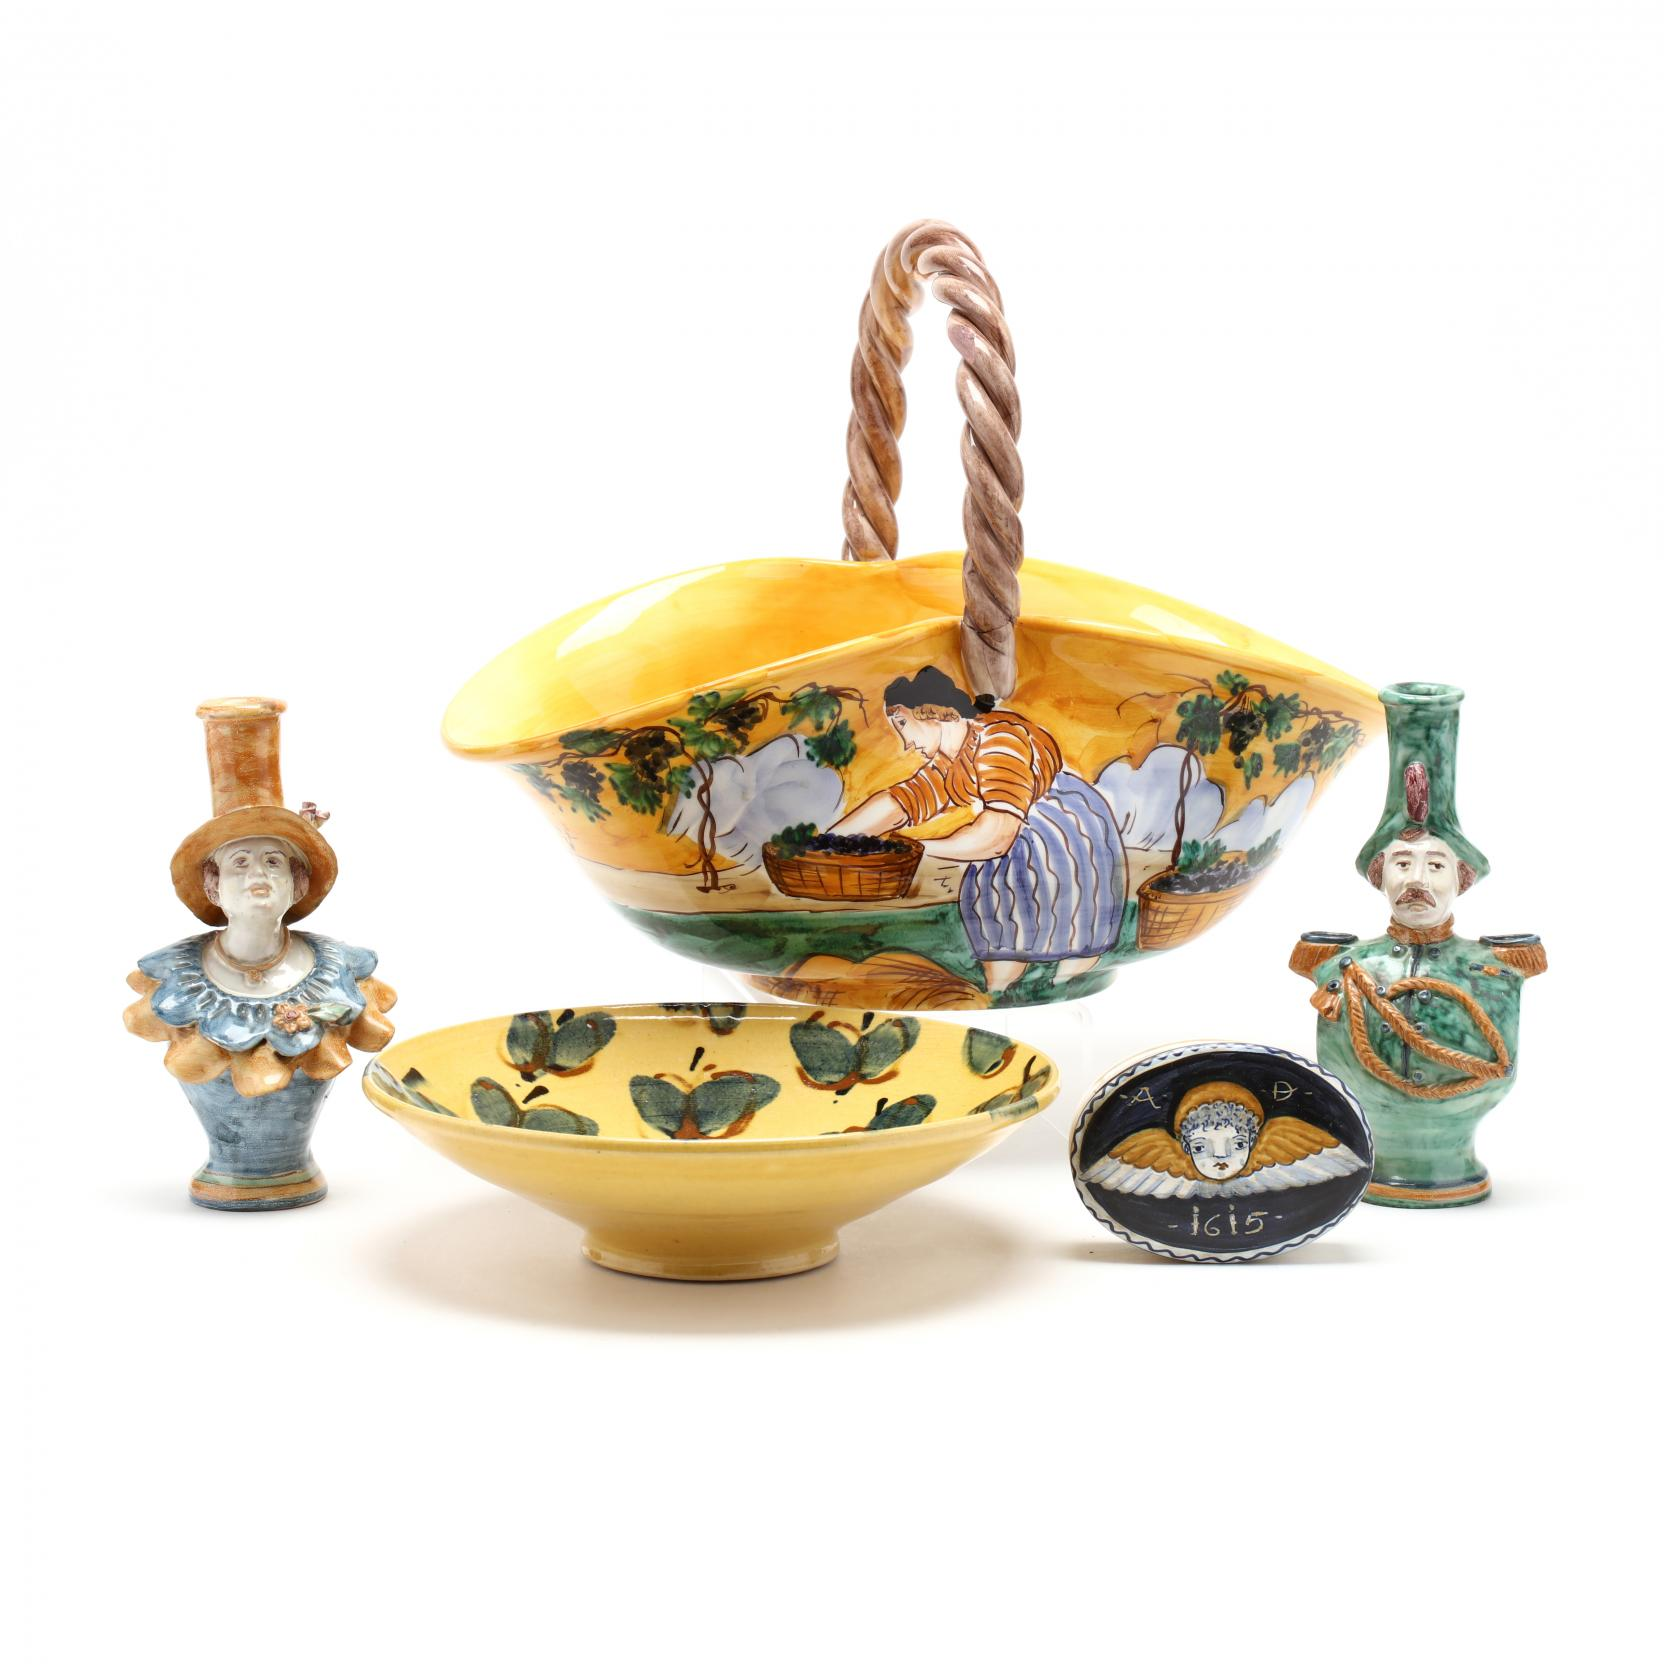 five-pieces-of-faience-glazed-objects